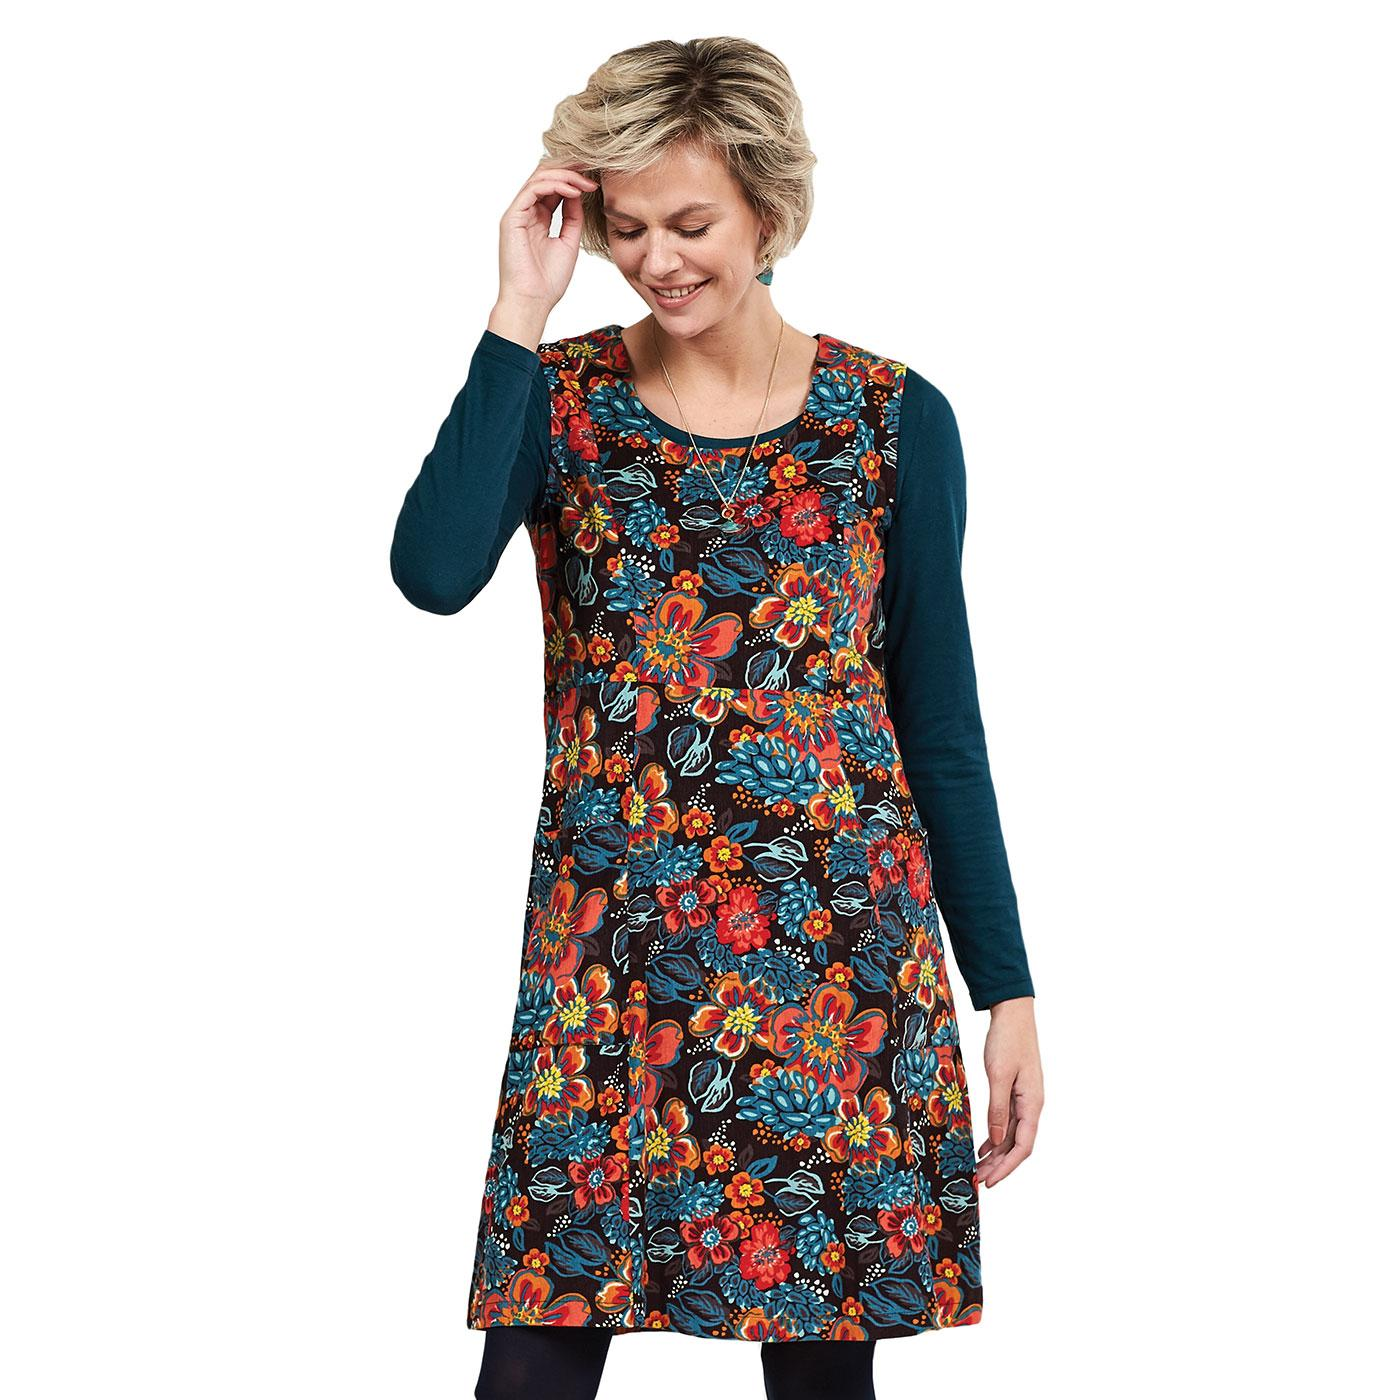 NOMADS Retro 70s Gypsy Print Cord Pinafore Dress